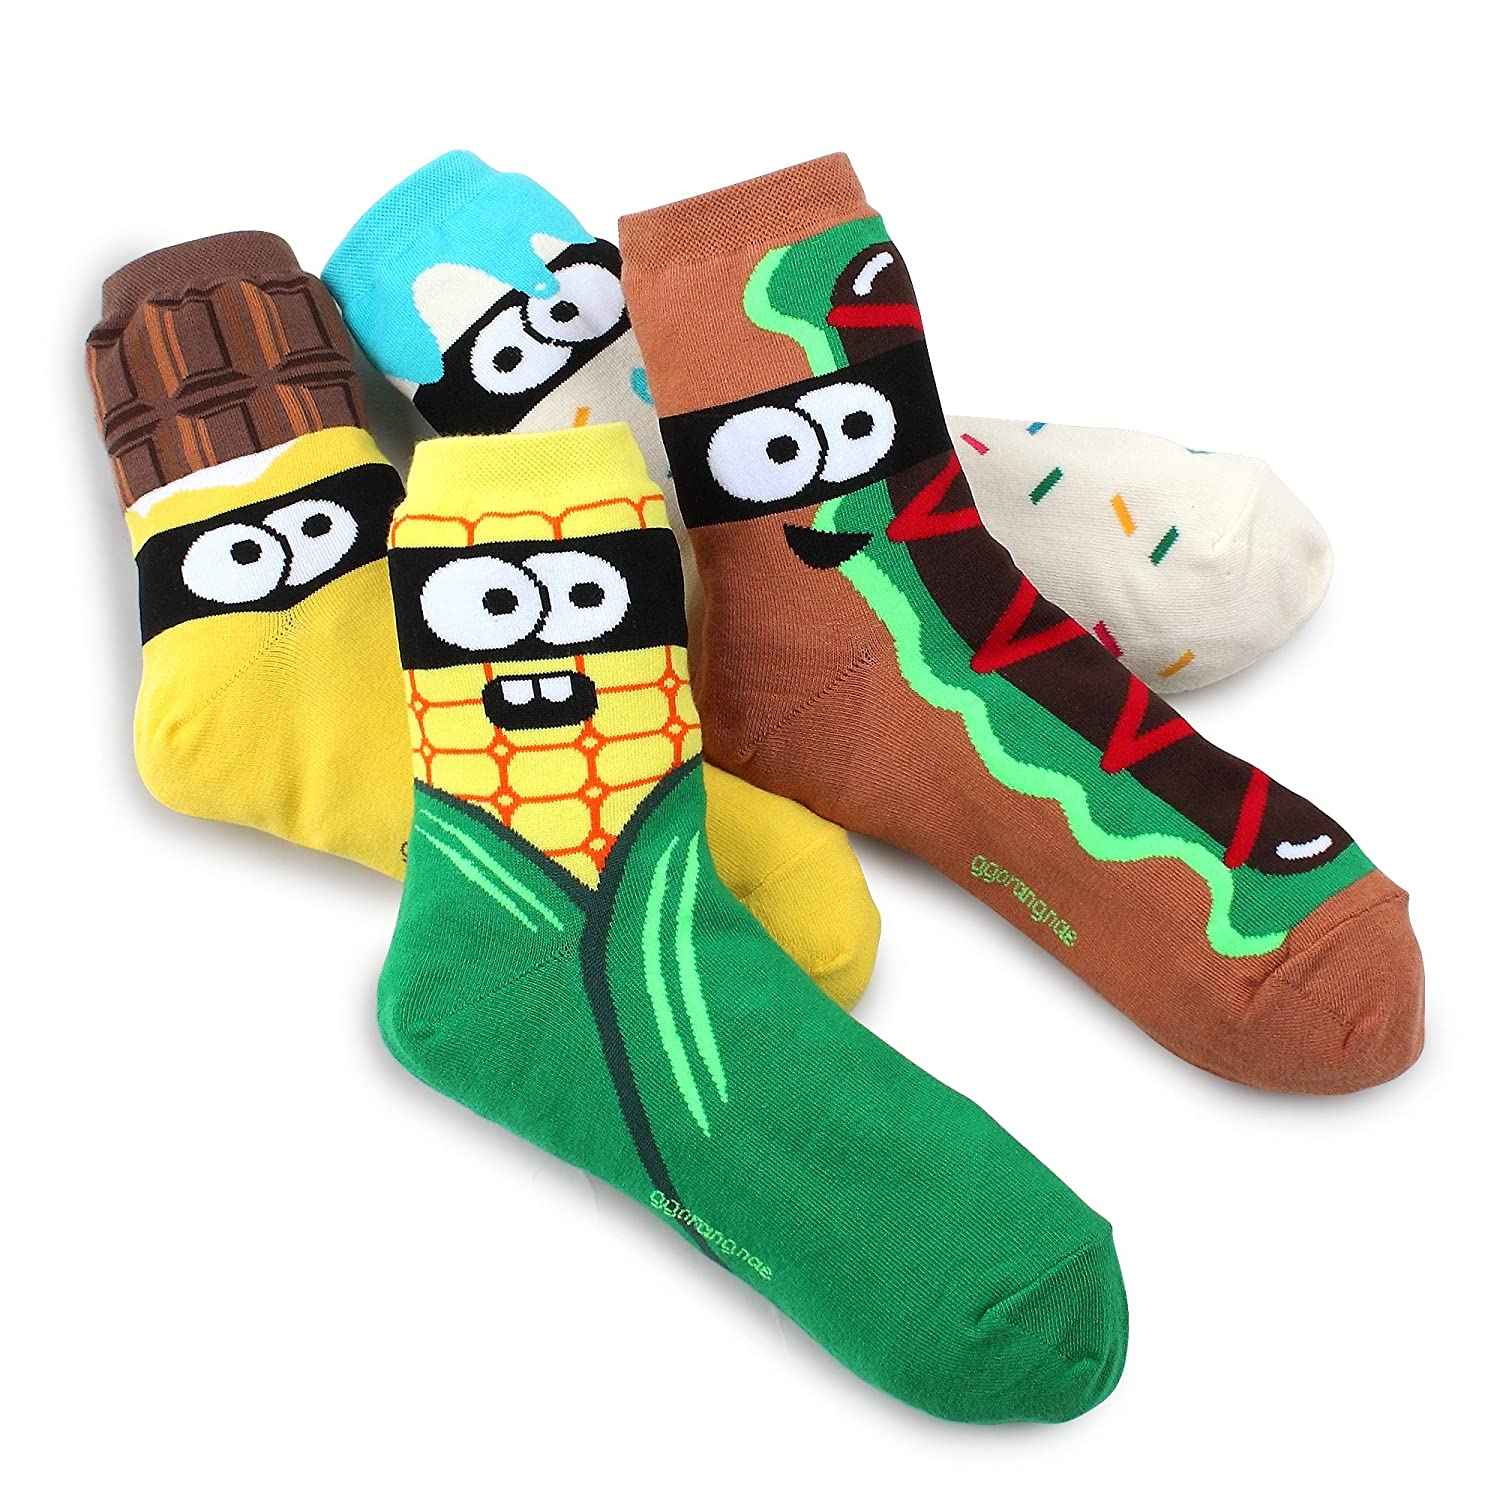 Intype - Calze - Donna A-Crew(Snack Monster) 4pairs 39-42,5: Amazon.it:  Abbigliamento